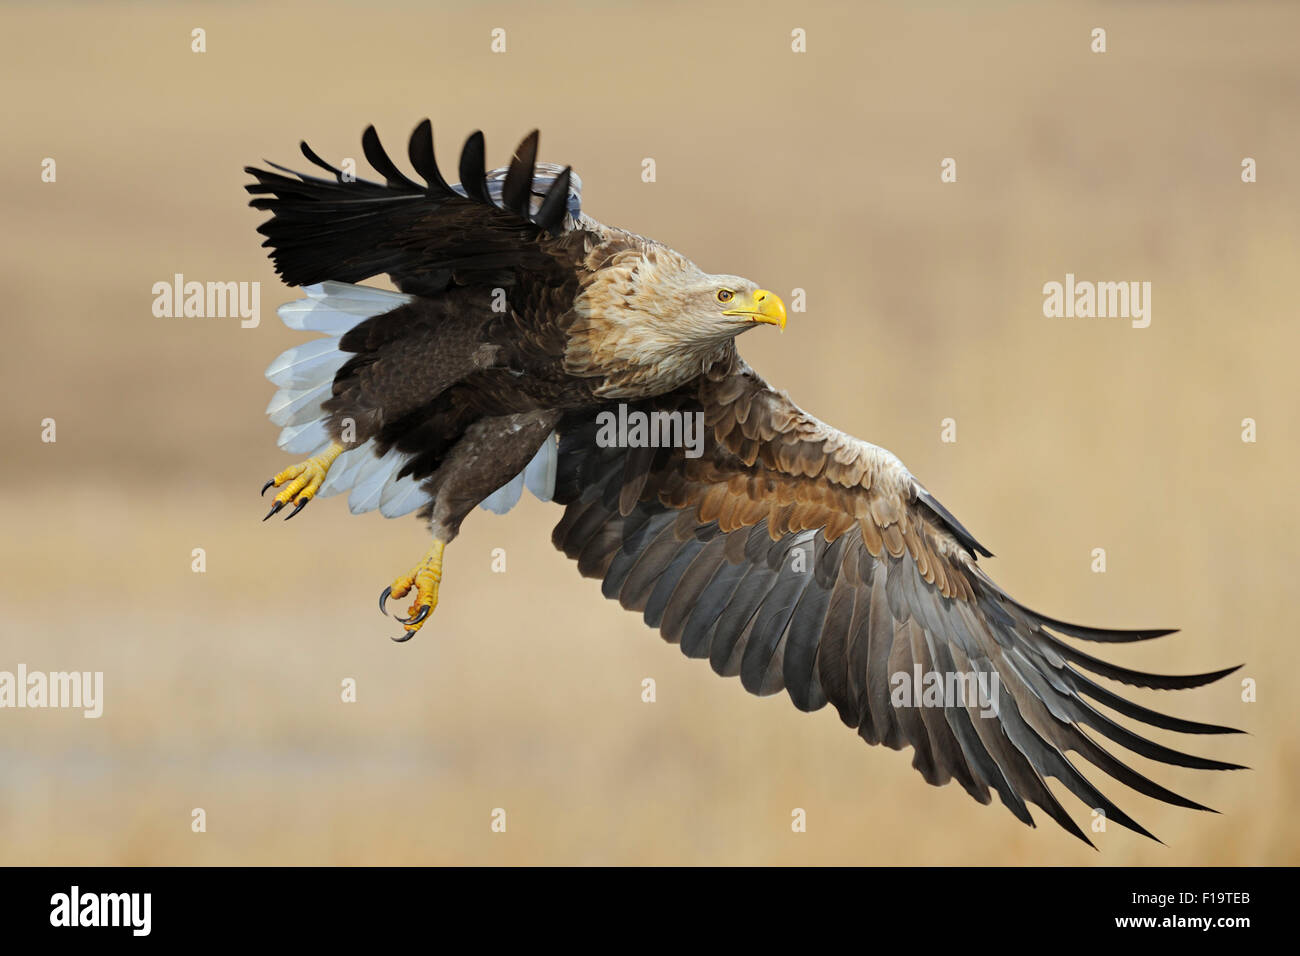 Powerful Haliaeetus albicilla / Seeadler / White-tailed Eagle with wide open wings  flying over reed grass in wetlands. - Stock Image